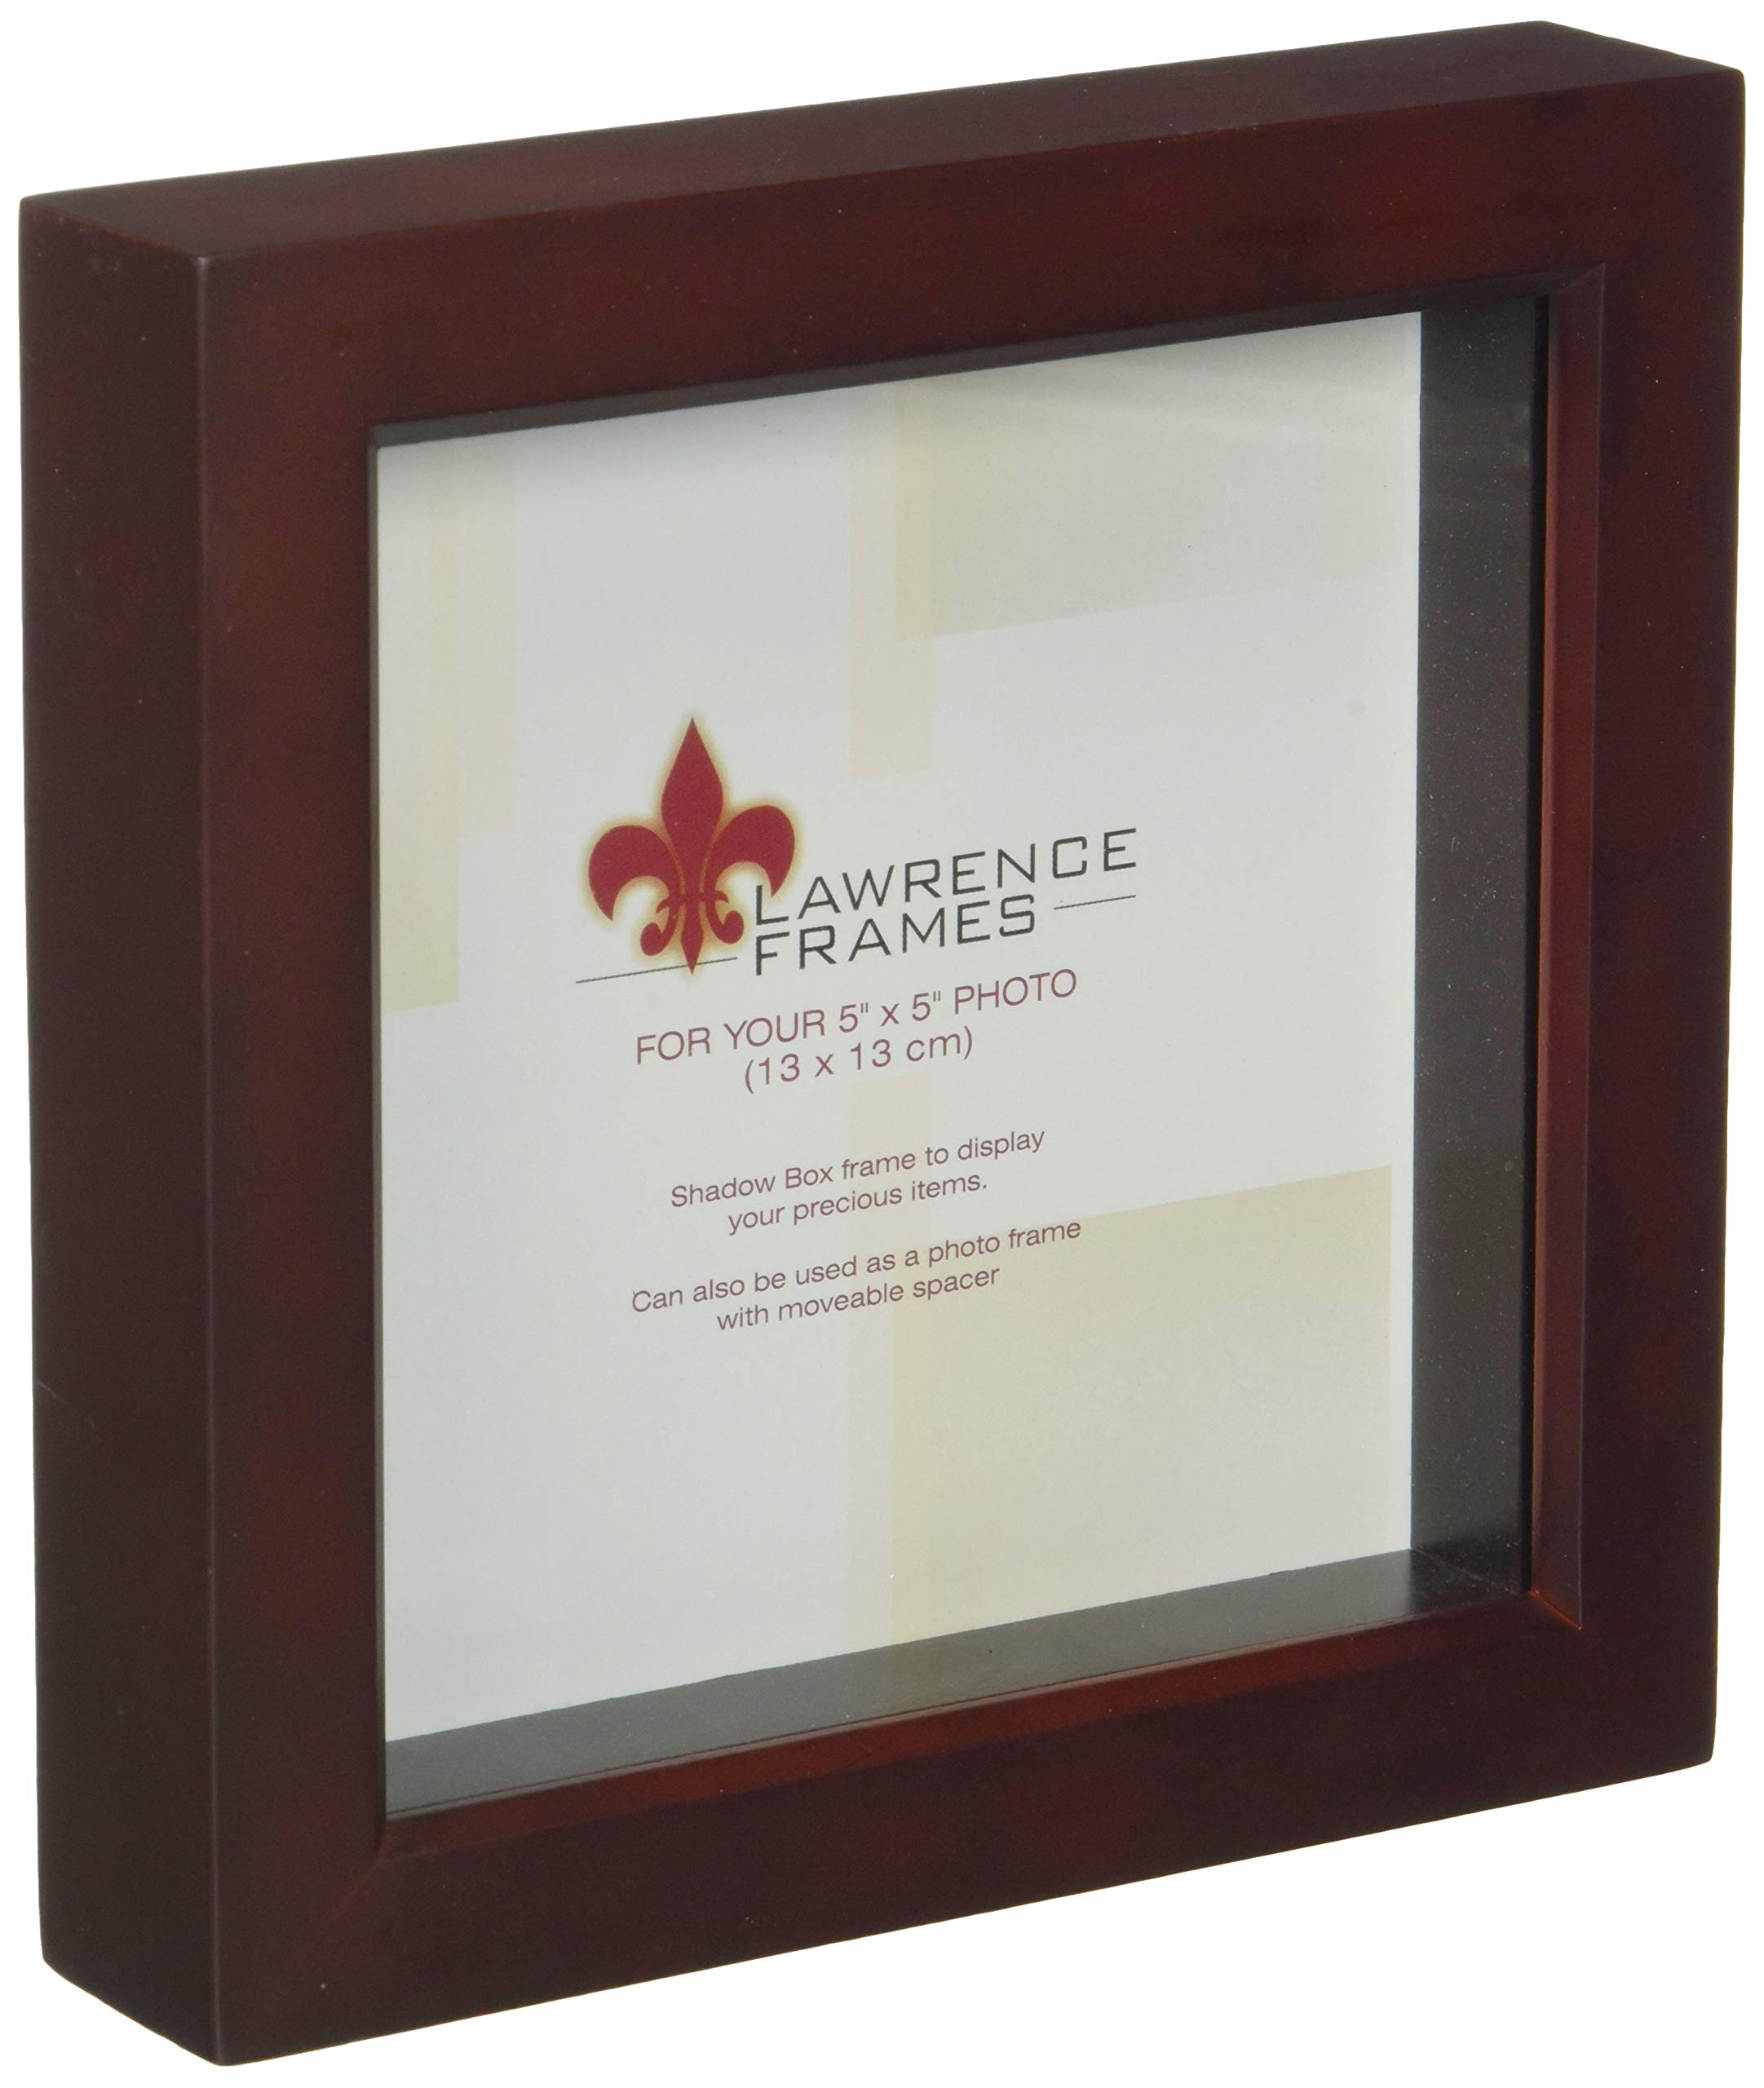 Lawrence Frames 795155 Wood Treasure Shadow Box Picture Frame, 5 X 5 Inch, Espresso by Lawrence Frames